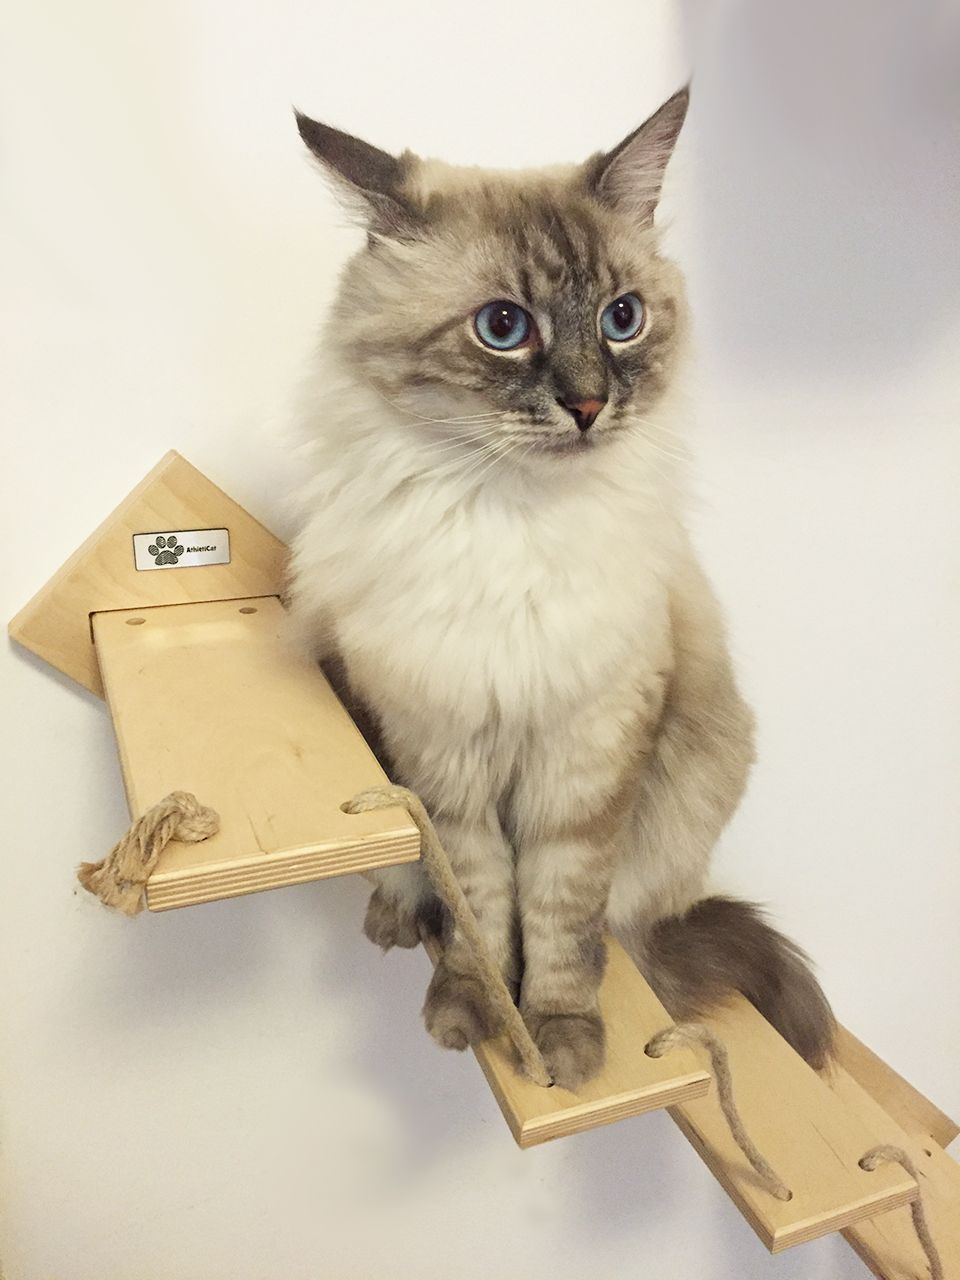 Handmade made in Italy wooden ladder for cats by www.athleticat.it